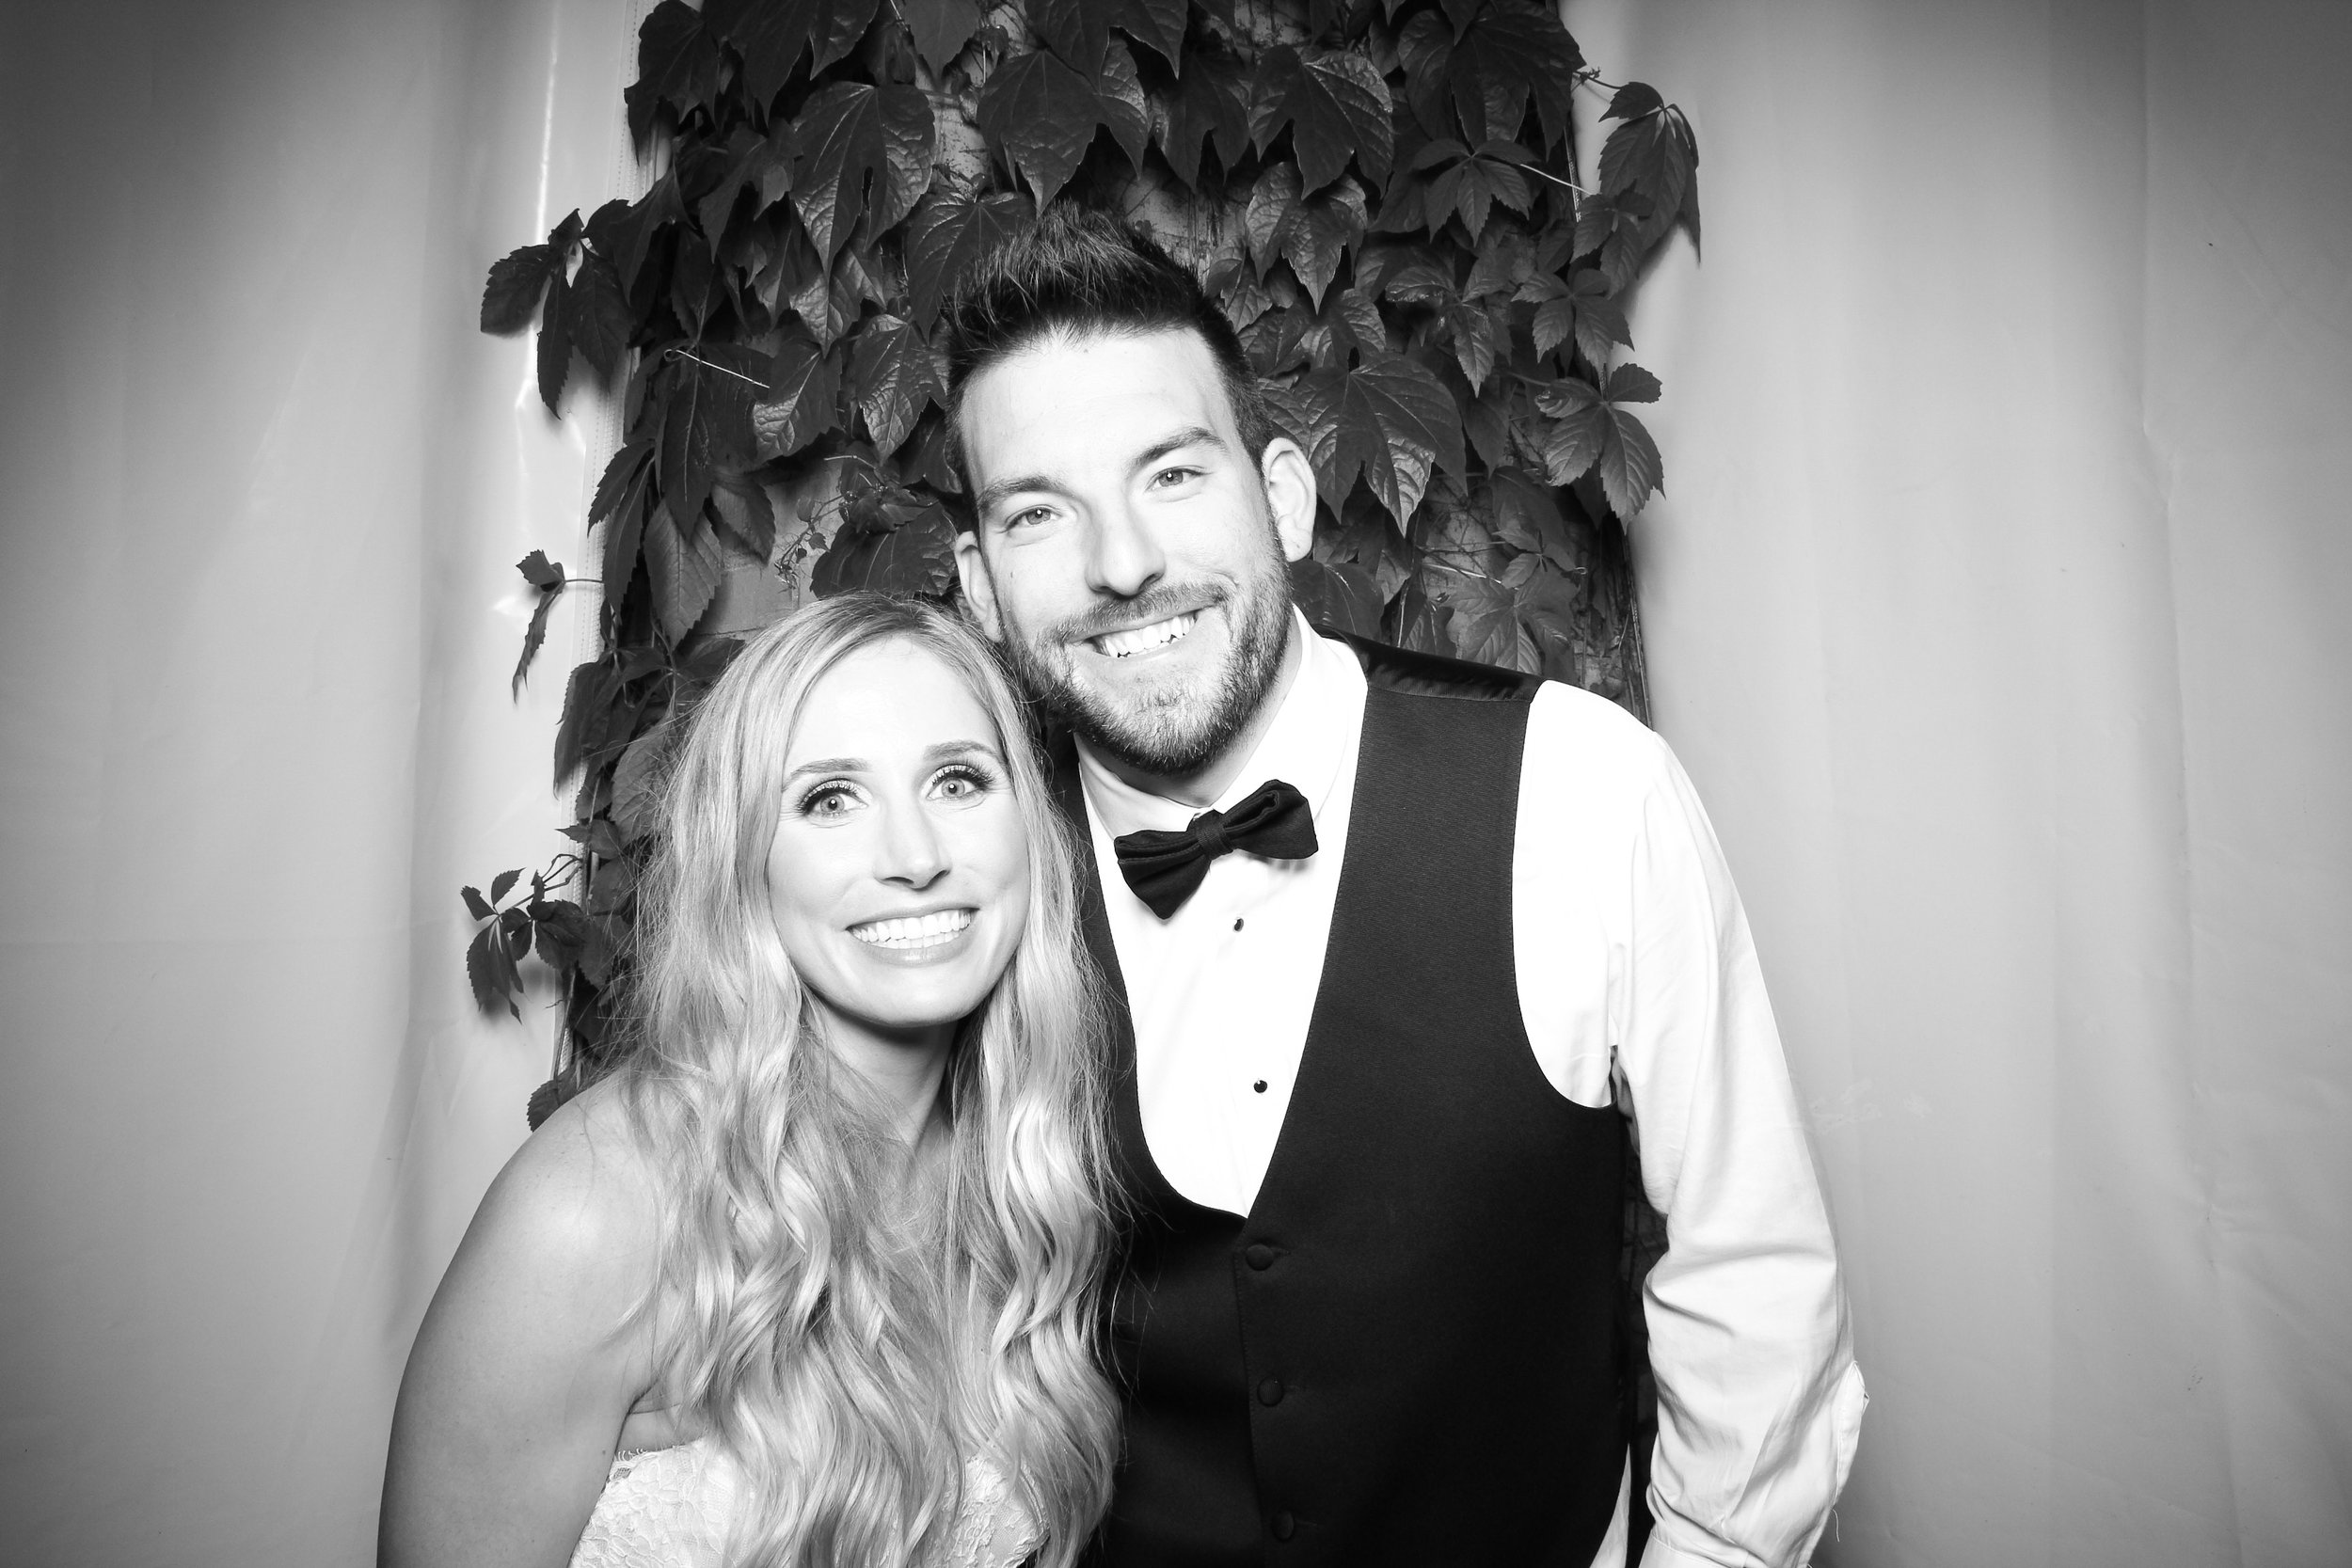 Chicago_Vintage_Wedding_Photobooth_Botanic_Garden_13.jpg